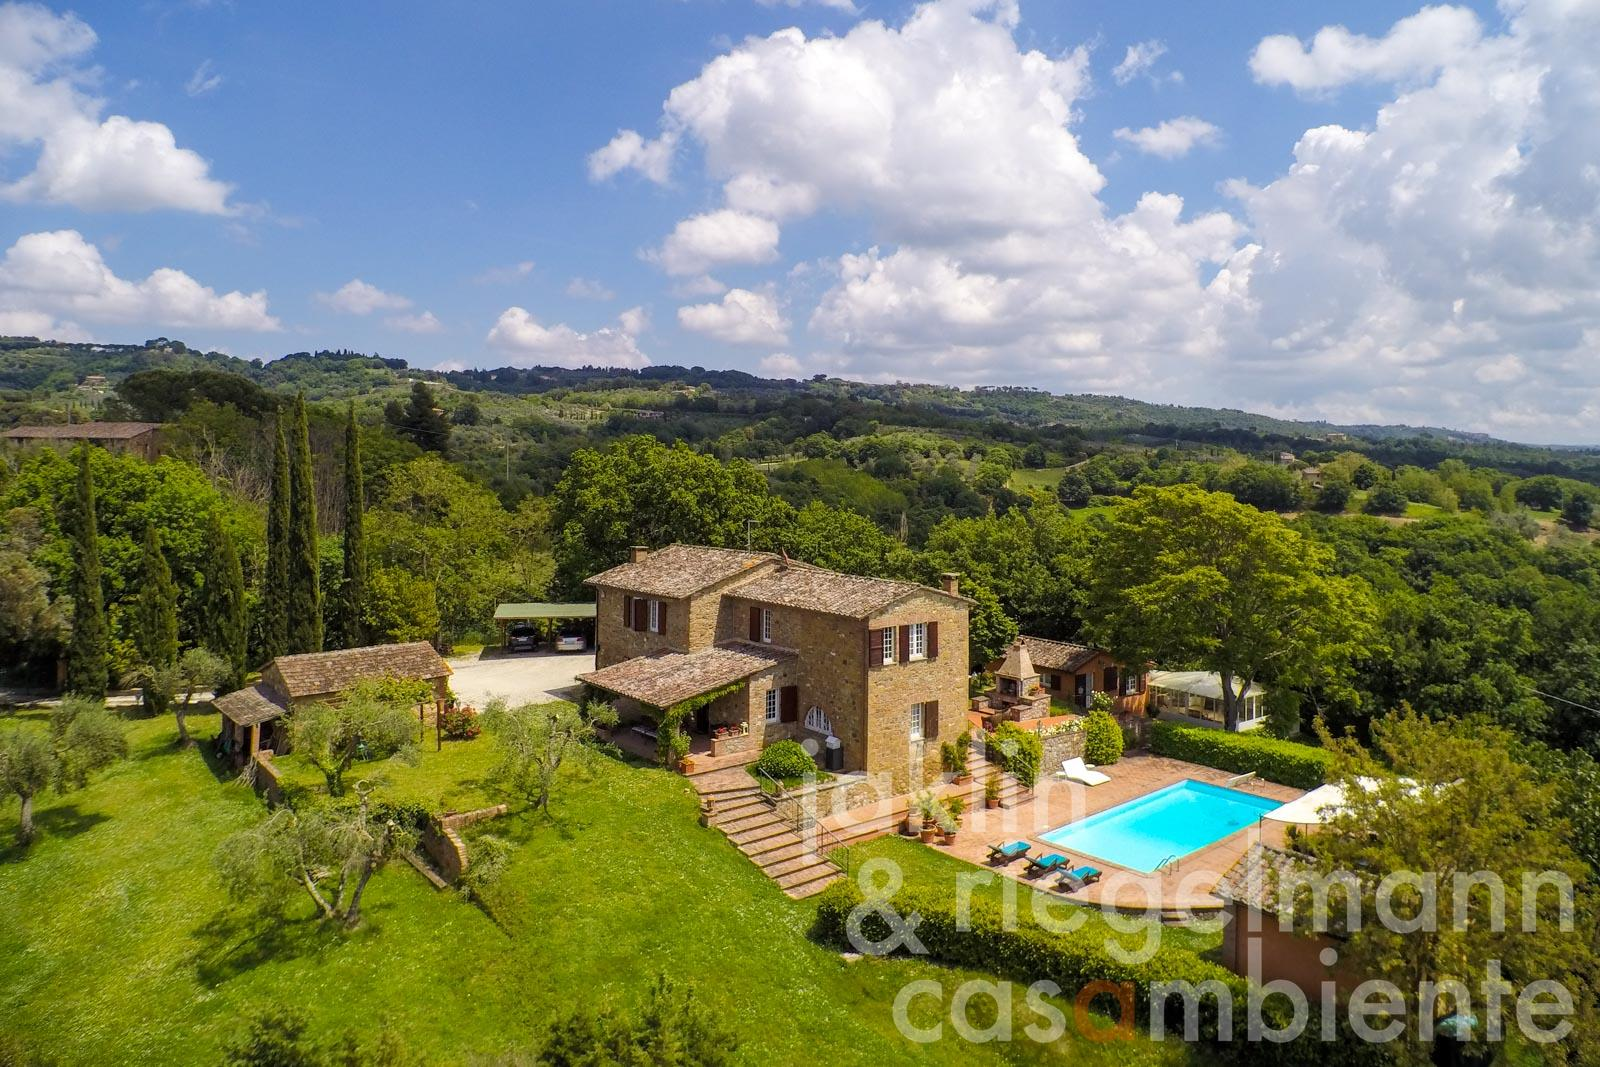 Farmhouse with guest house, garage and pool set within 4 ha of land near Città della Pieve in Umbria